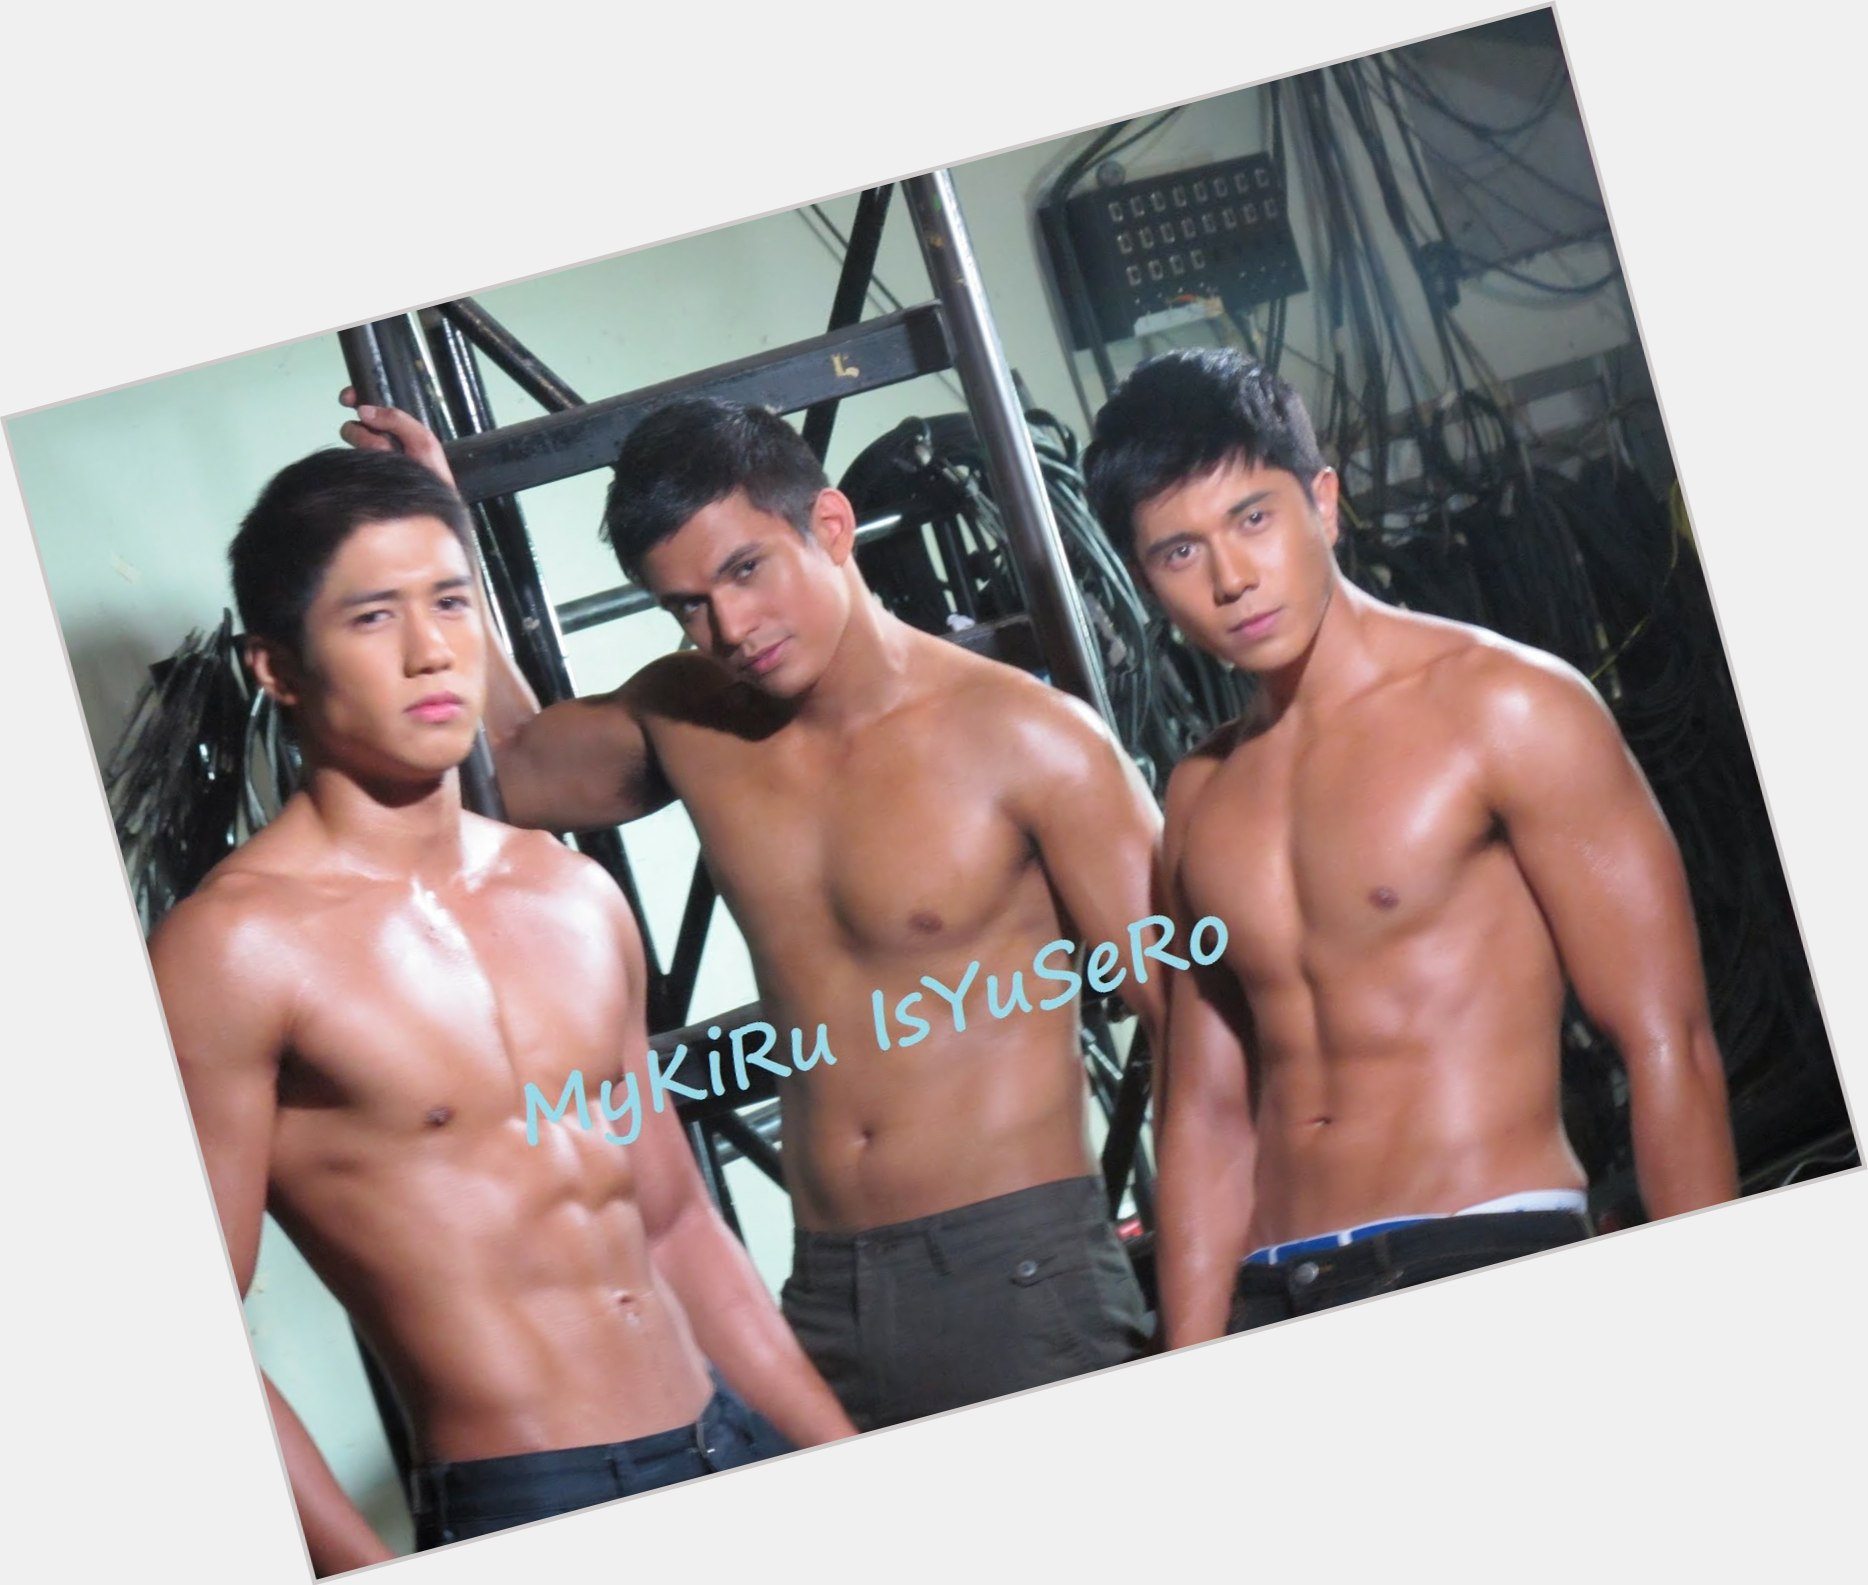 from Blaze kc and paulo dating